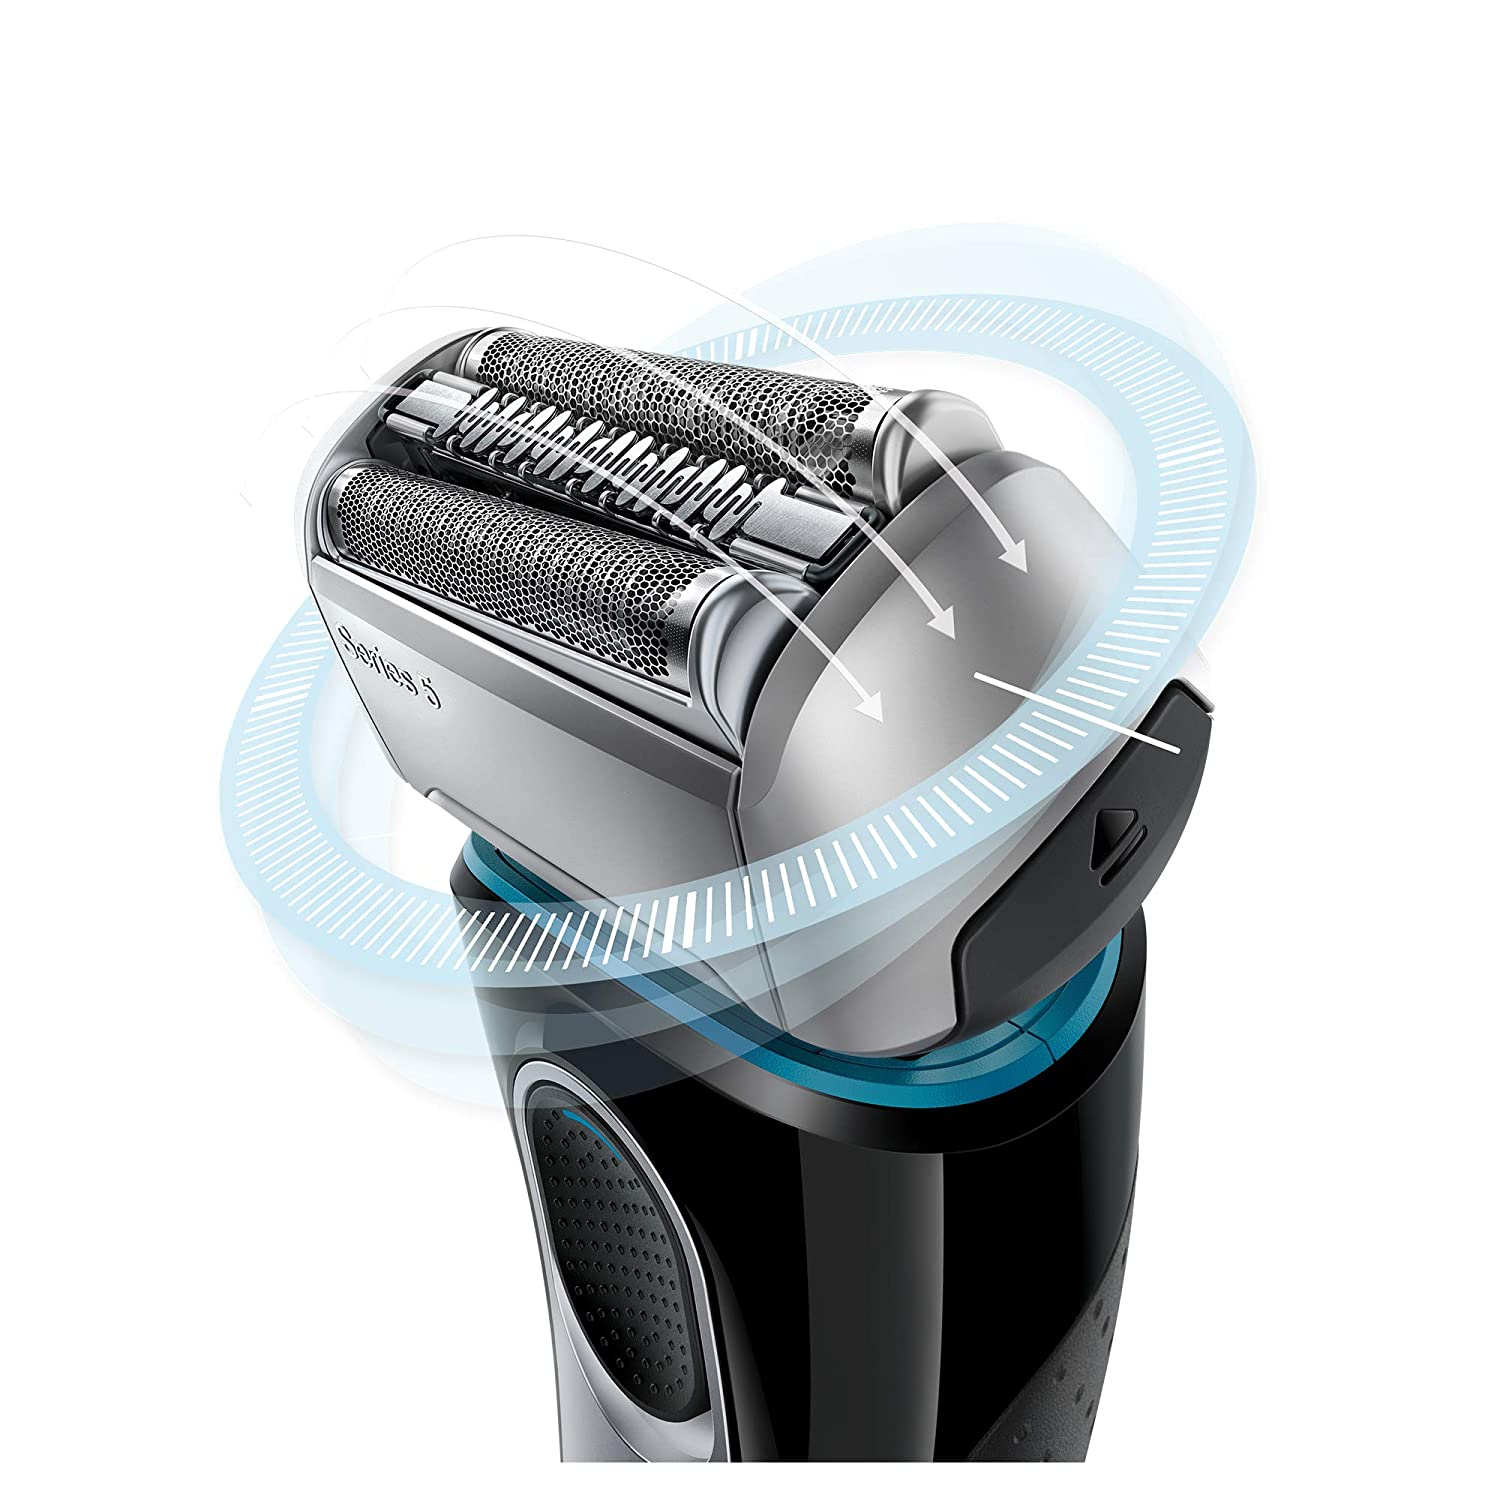 Braun Electric Razor for Men Electric Shaver, Series 5 5190cc, Rechargeable with Clean Charge Station